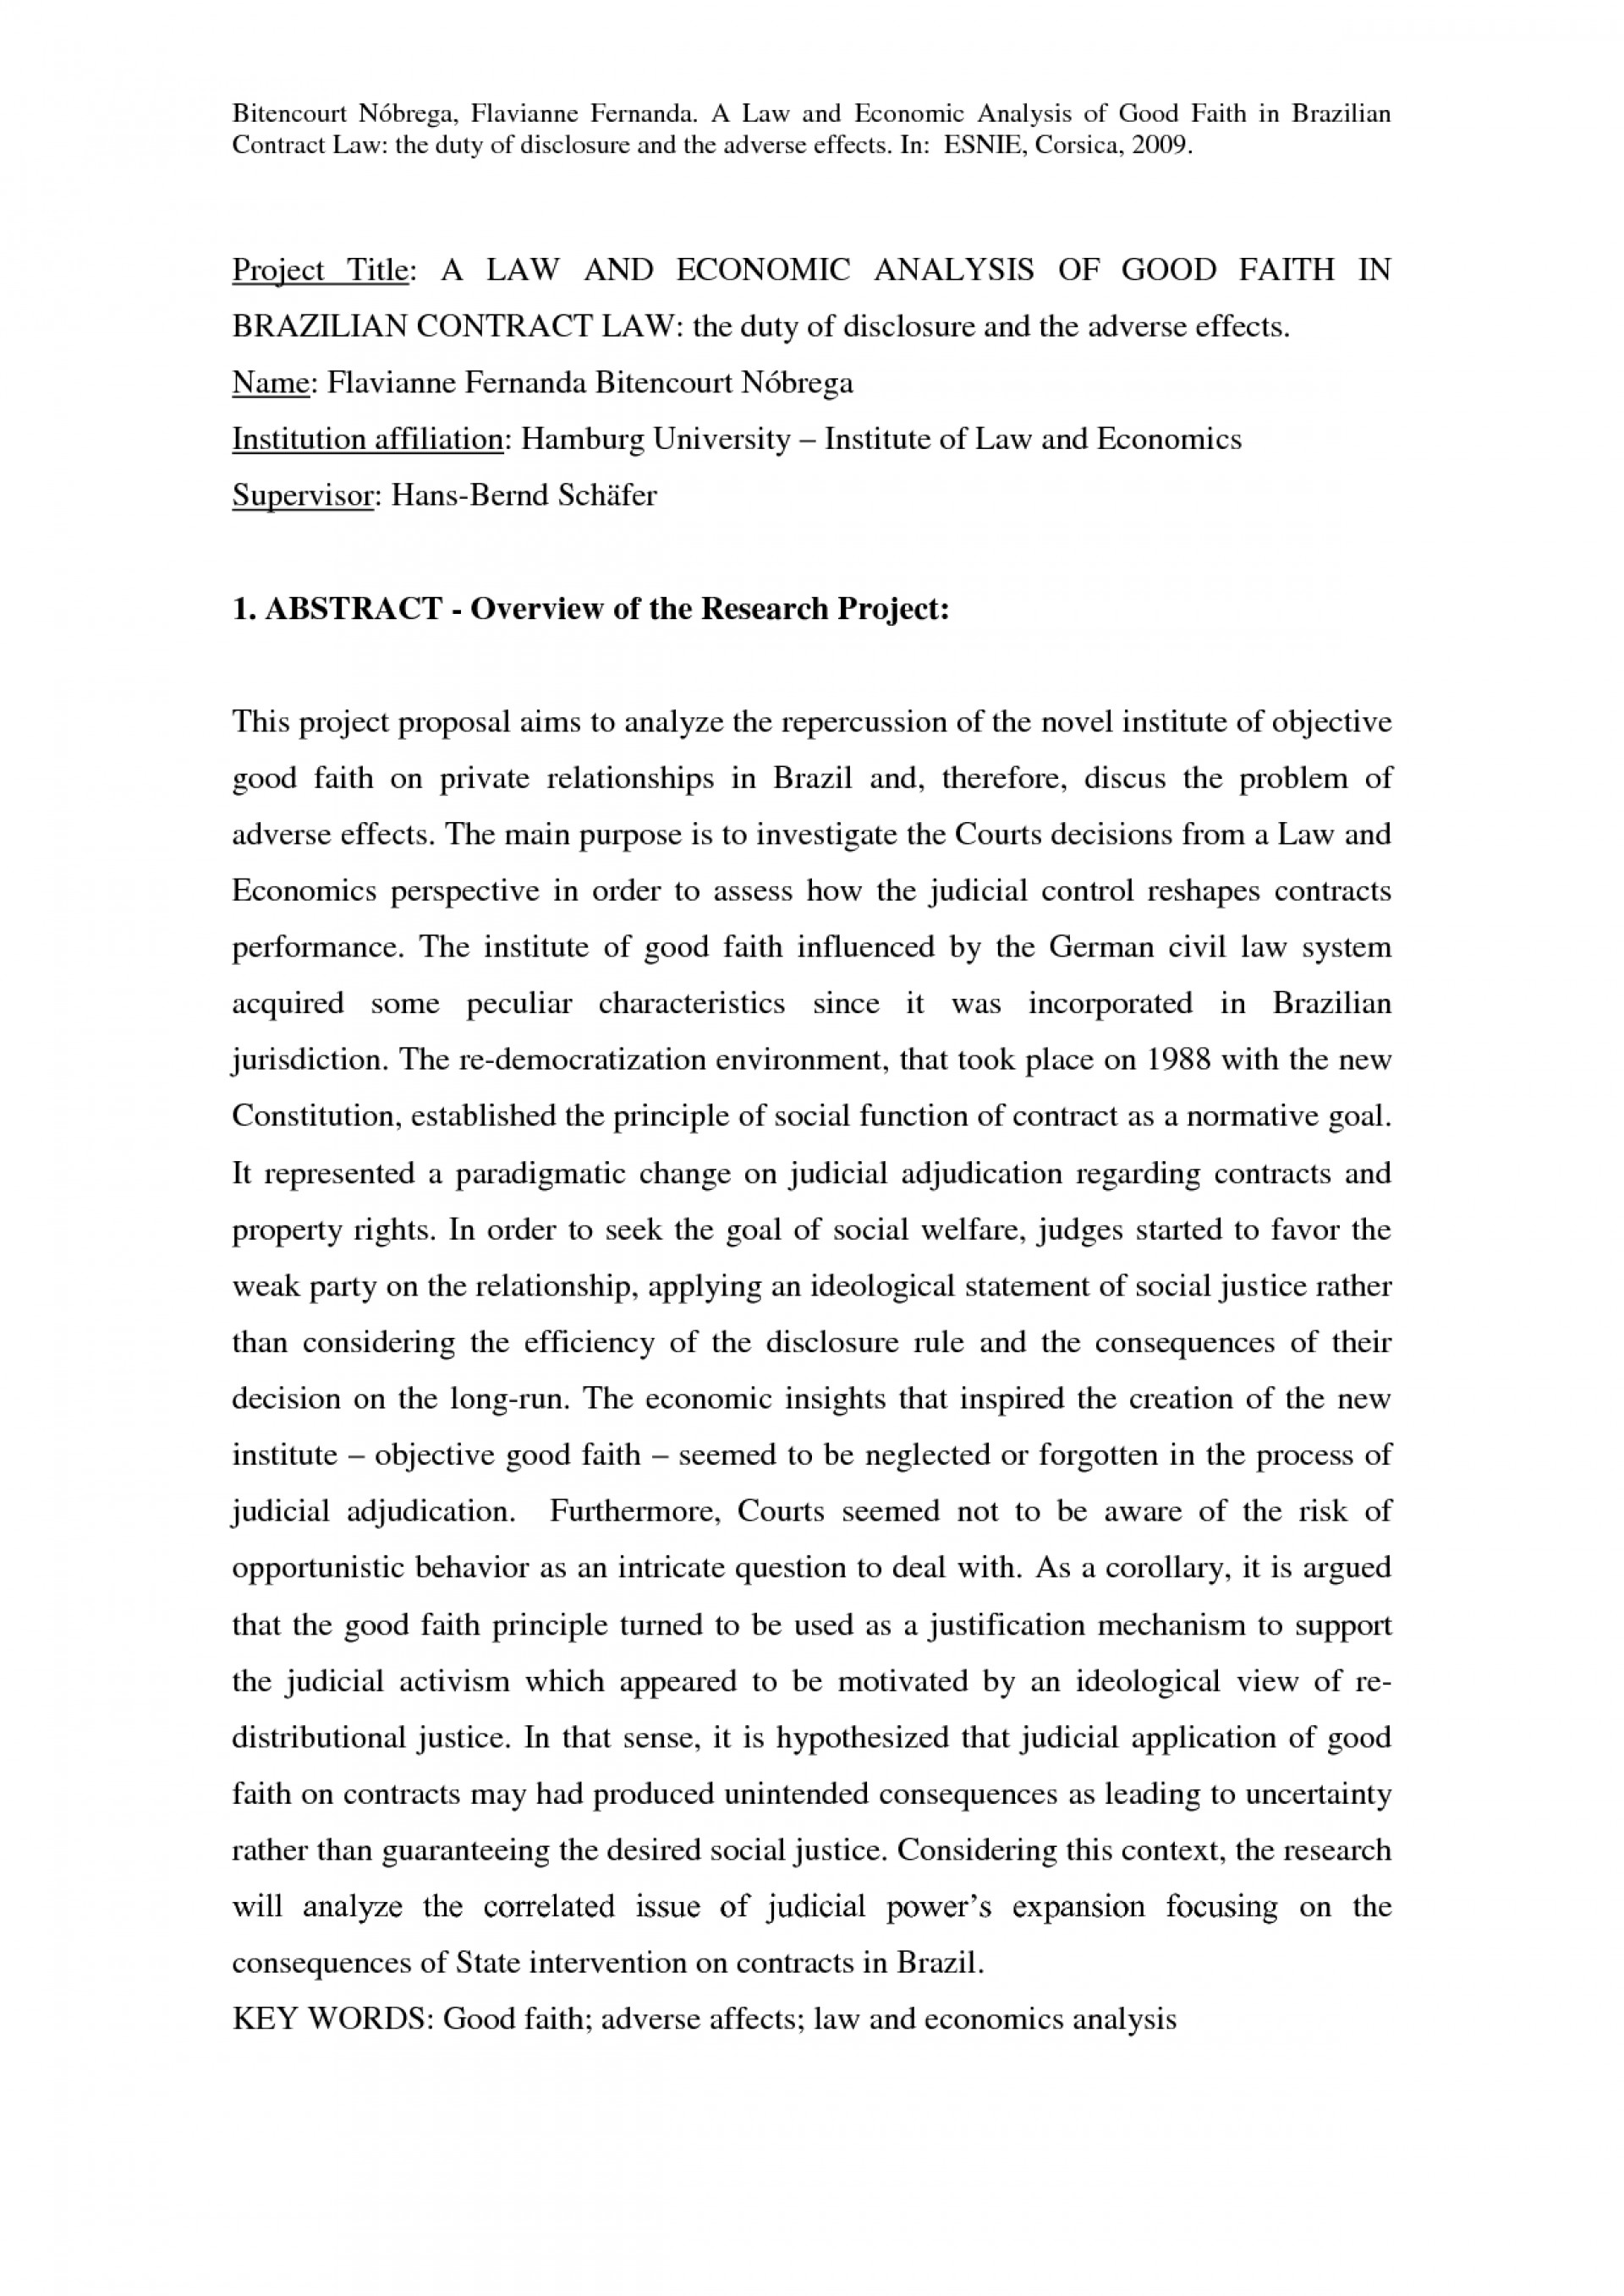 002 Abstract Of Legal Research Paper Magnificent A 1920